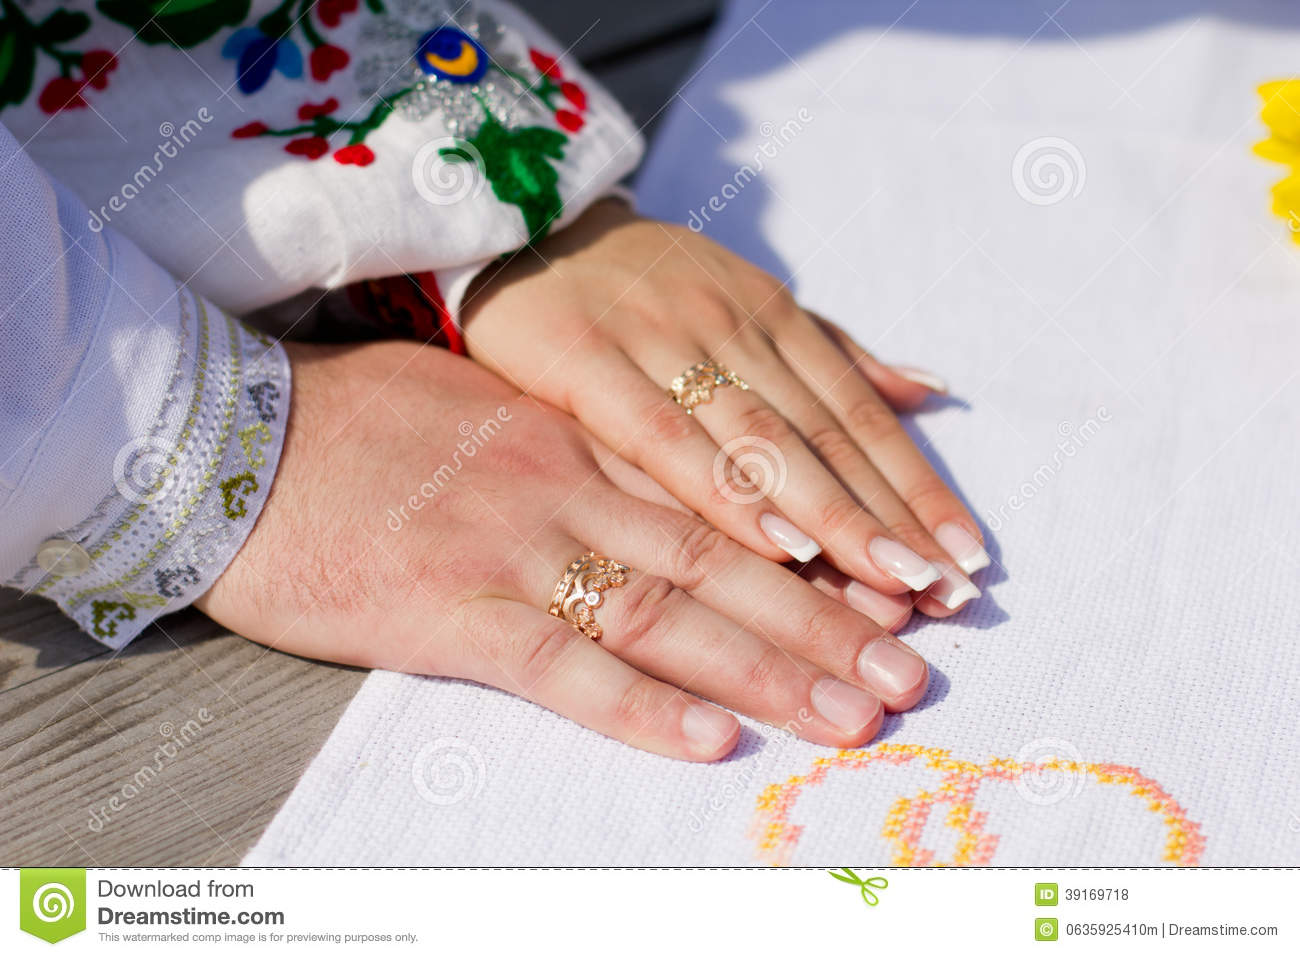 Hand with wedding rings stock photo Image of bride fingers 39169718